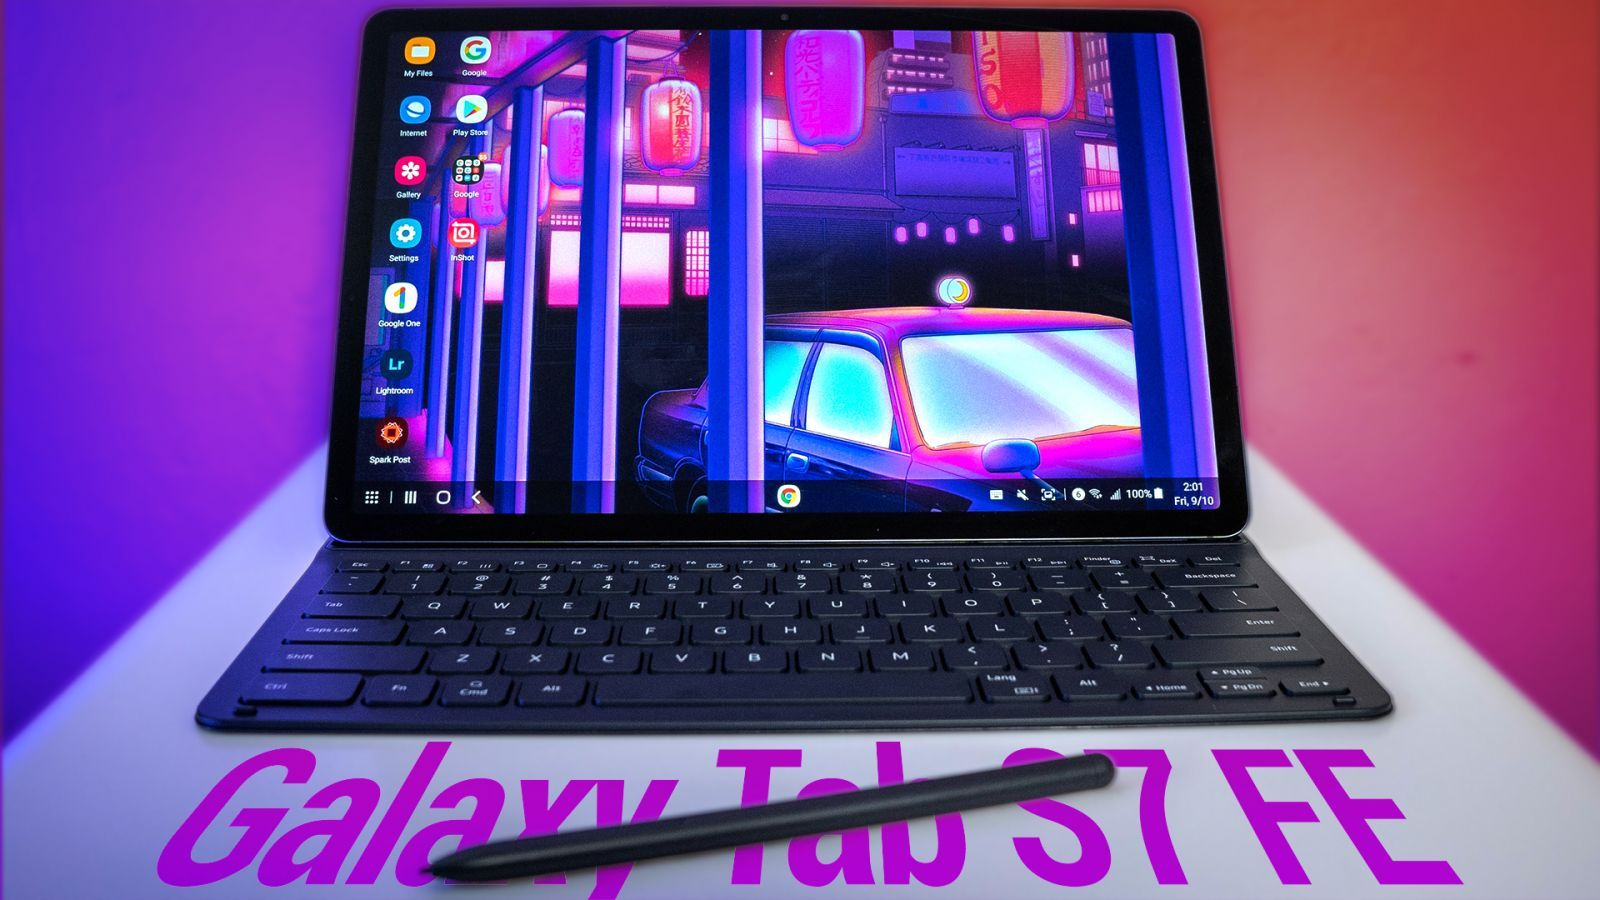 """Samsung Galaxy Tab S7 FE Review - Affordable 12.4"""" Android Tablet With 5G"""